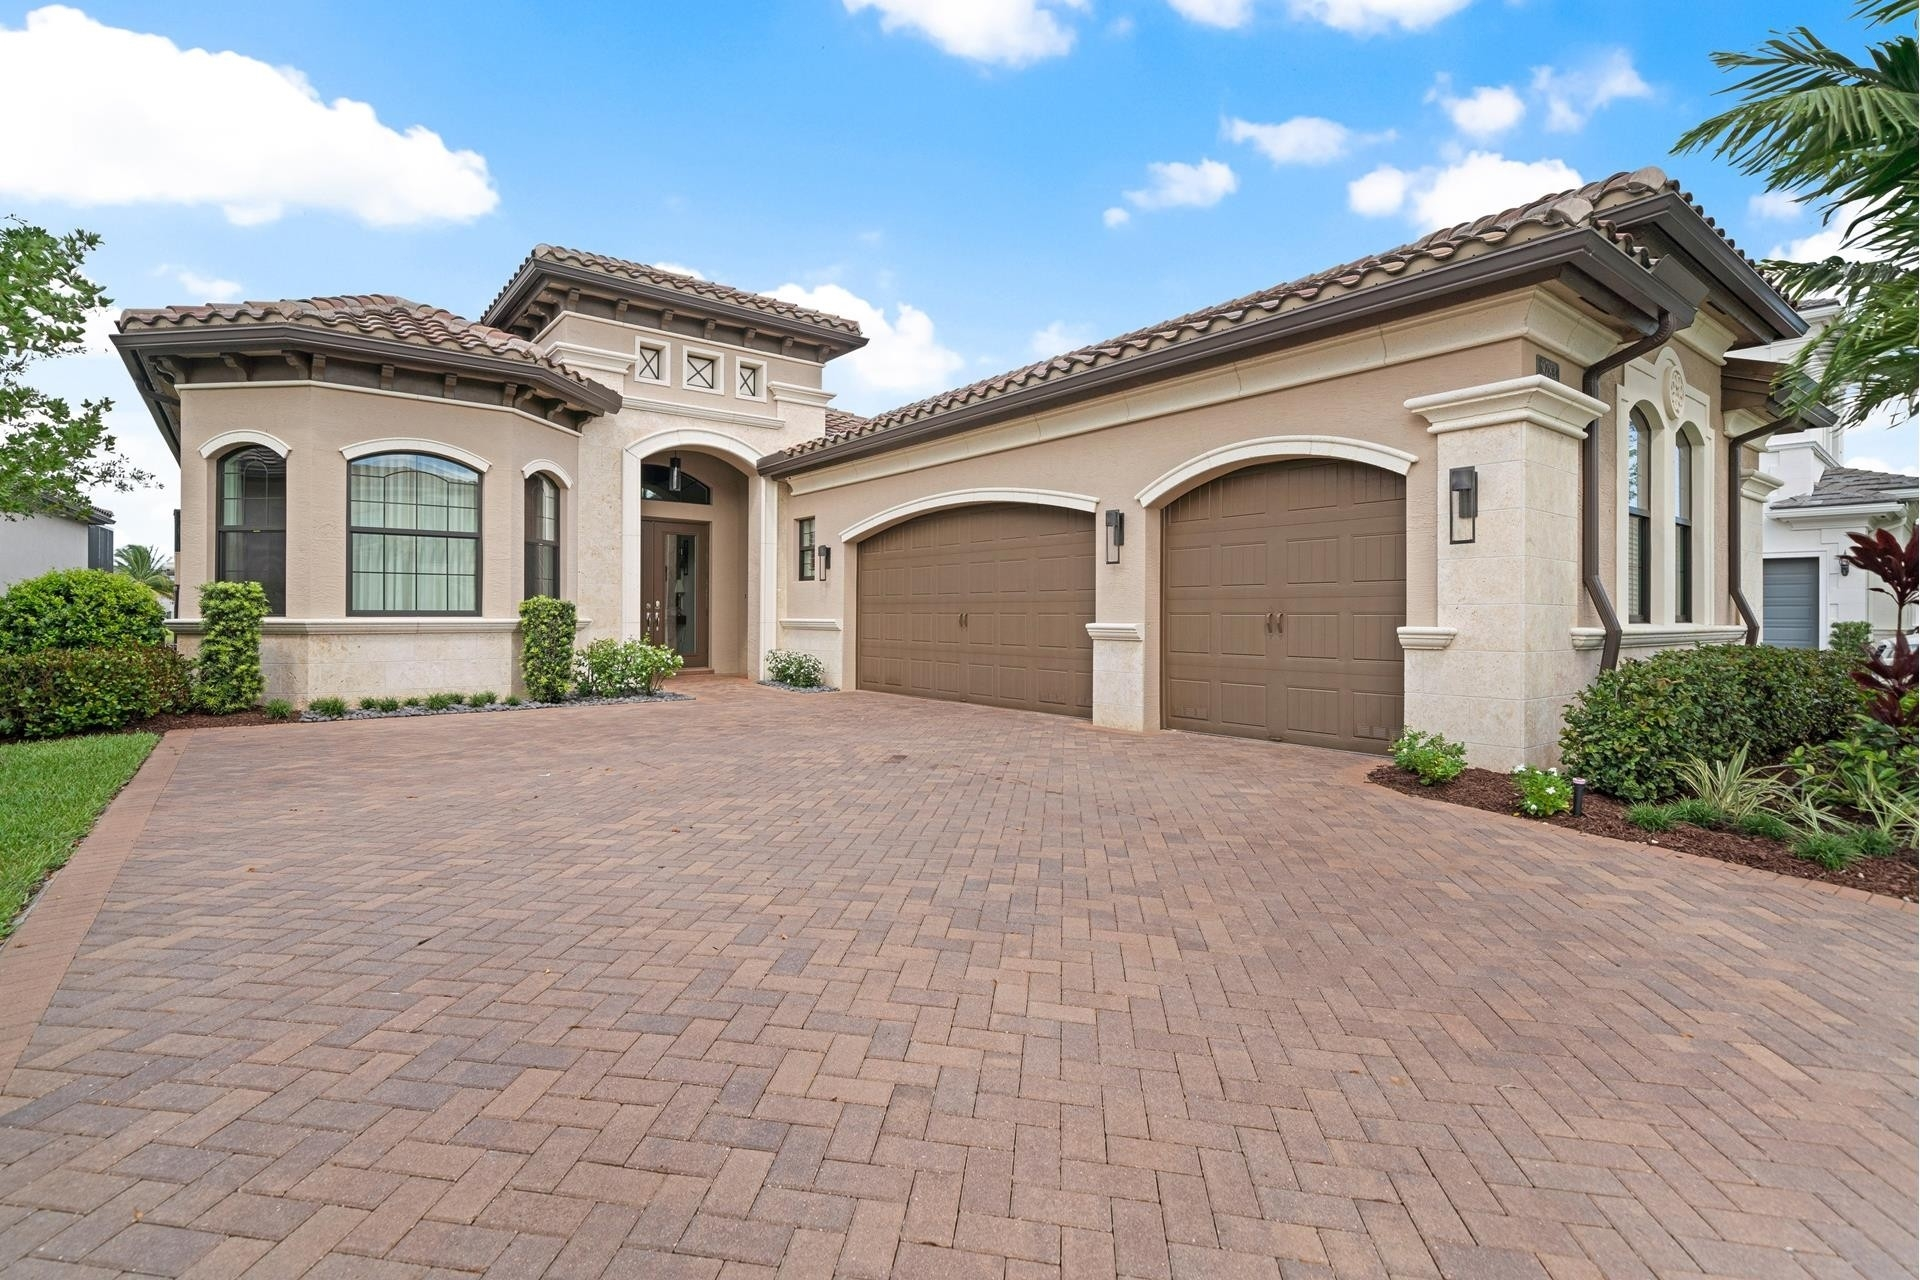 1. Single Family Homes for Sale at Delray Beach, FL 33446